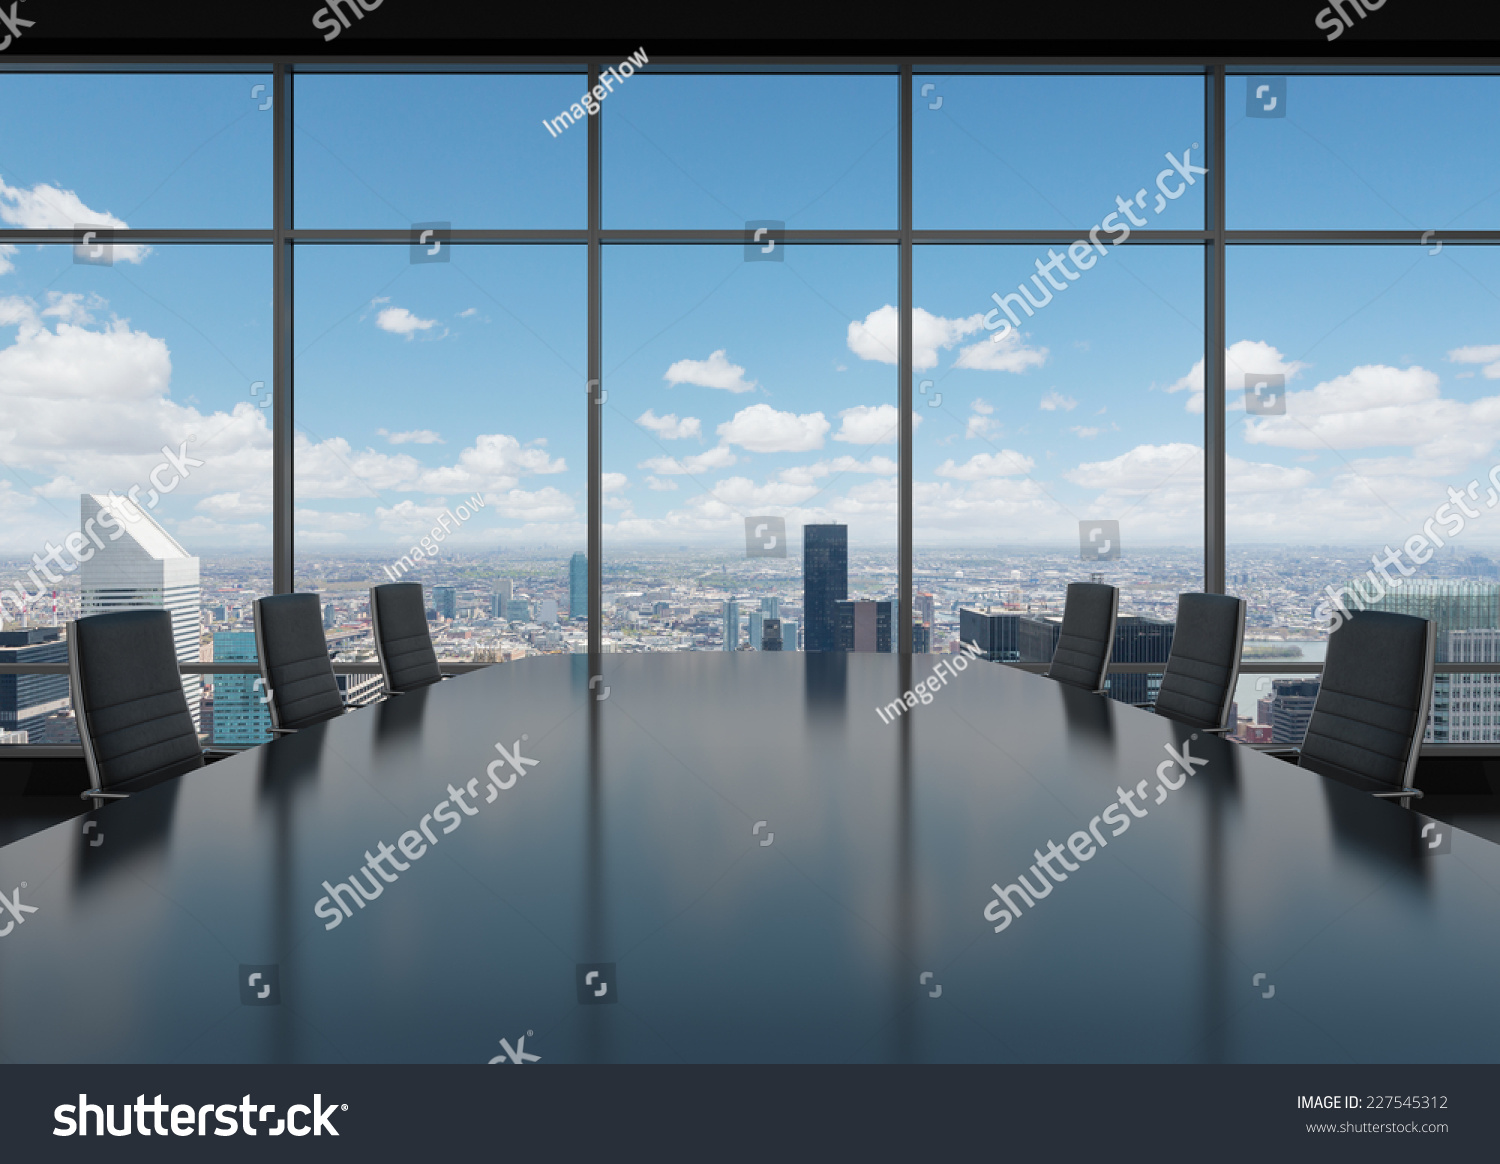 Conference Room Modern Office Windows City Stock Photo 227545312 ...